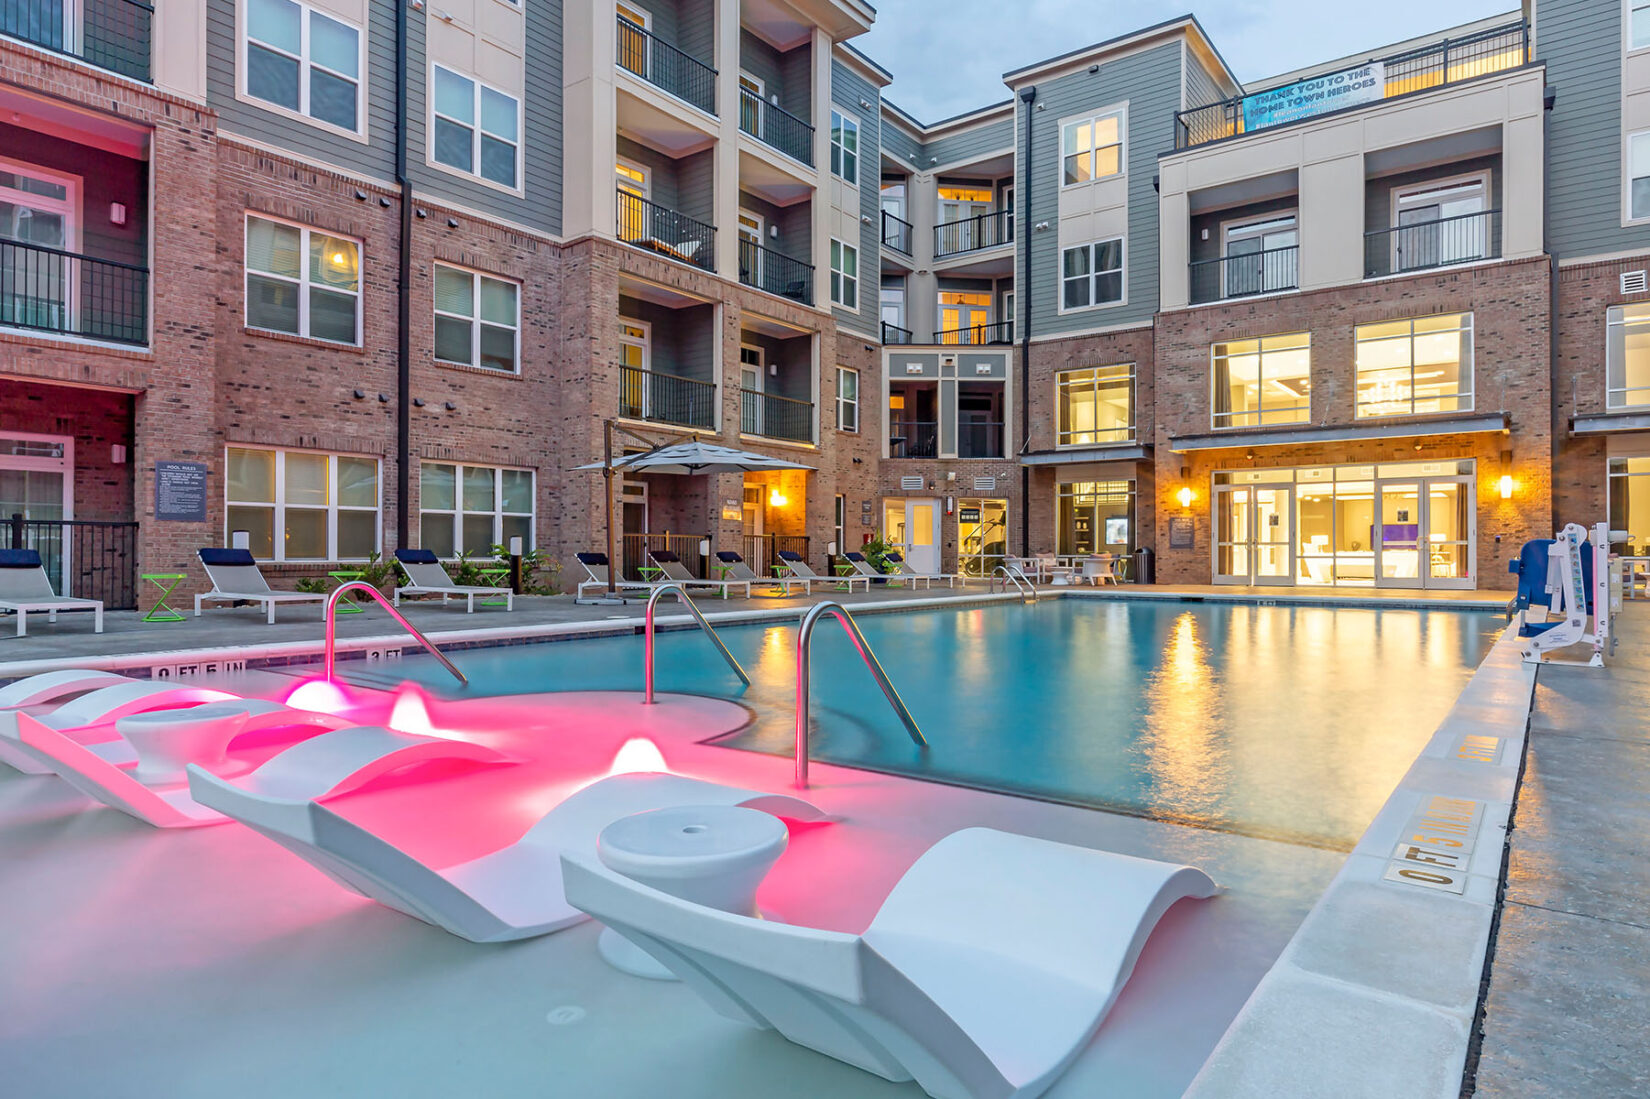 Apartment Community Pool with Pink Lights and Modern Lounge Chairs